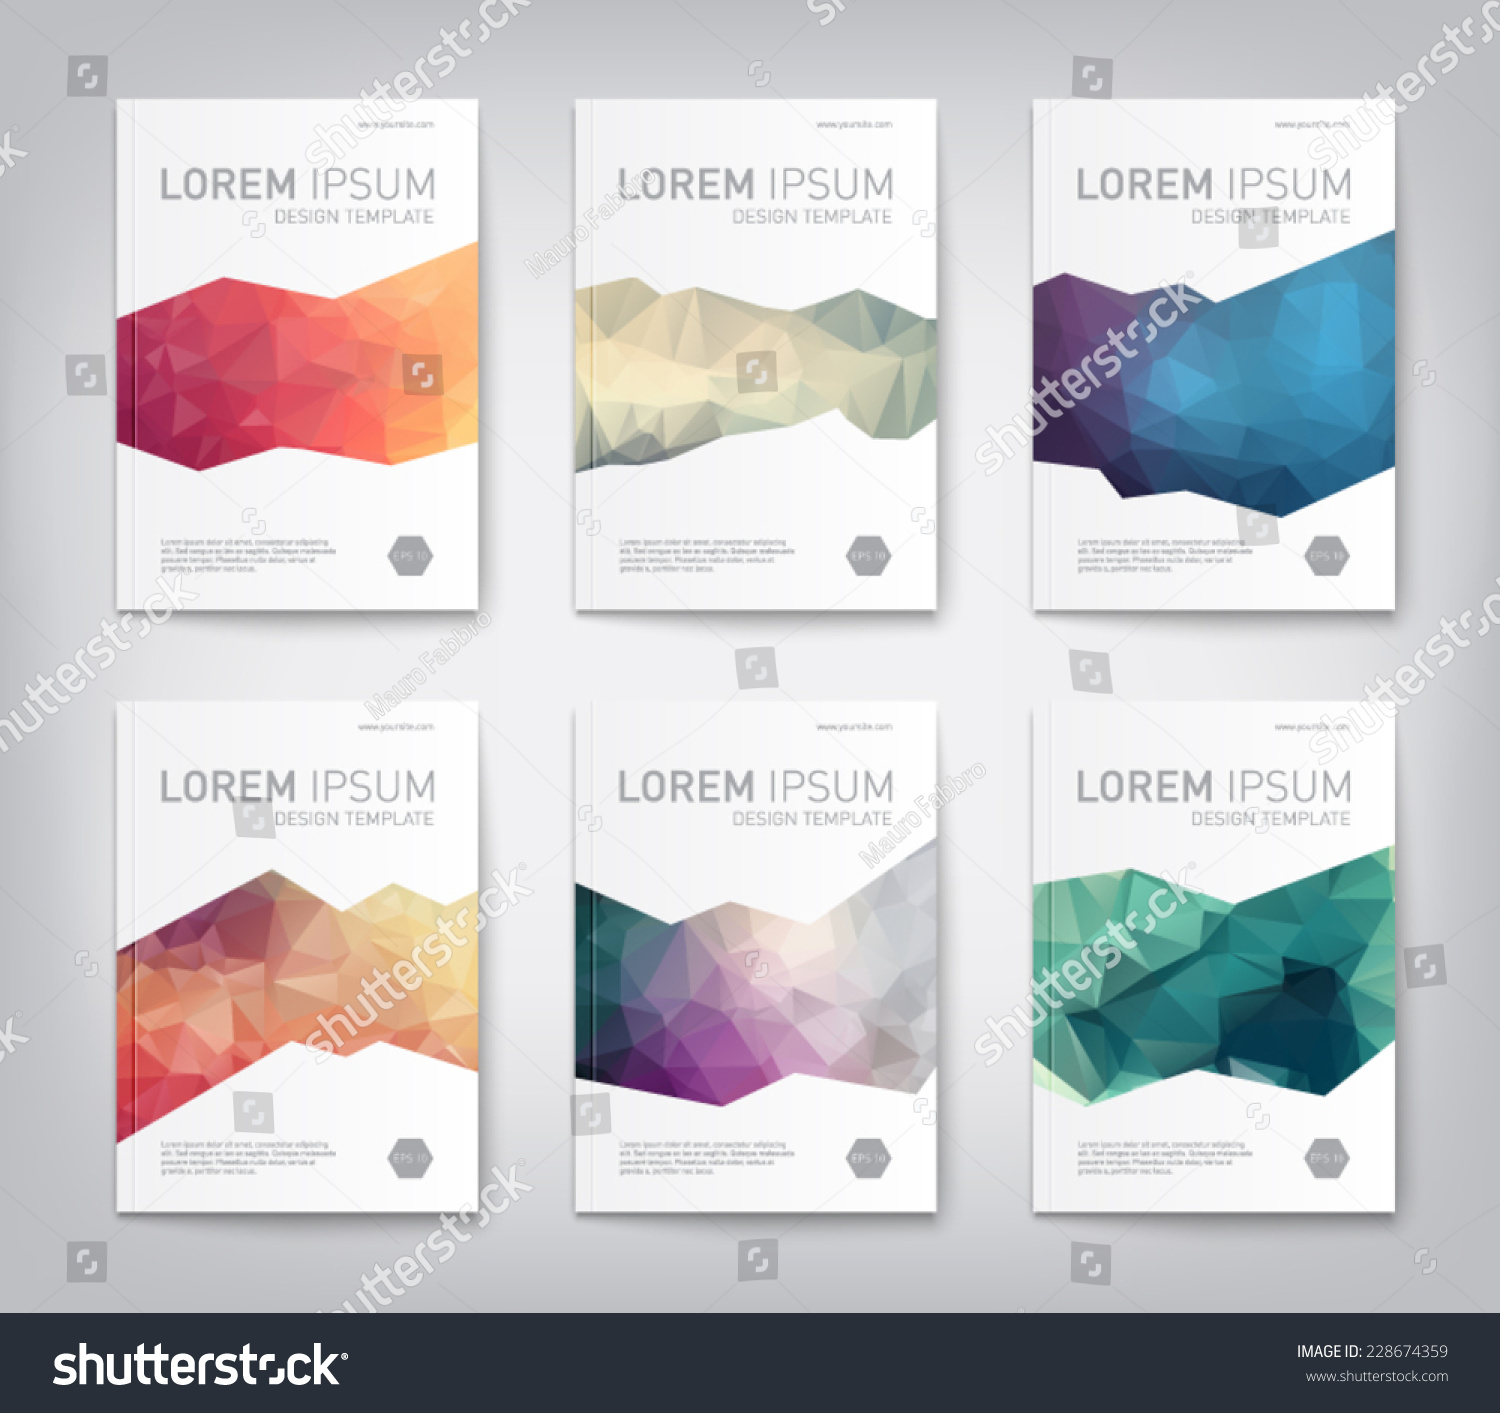 set abstract modern cover report brochure stock vector 228674359 set of abstract modern cover report brochure flyer design template geometric triangular style